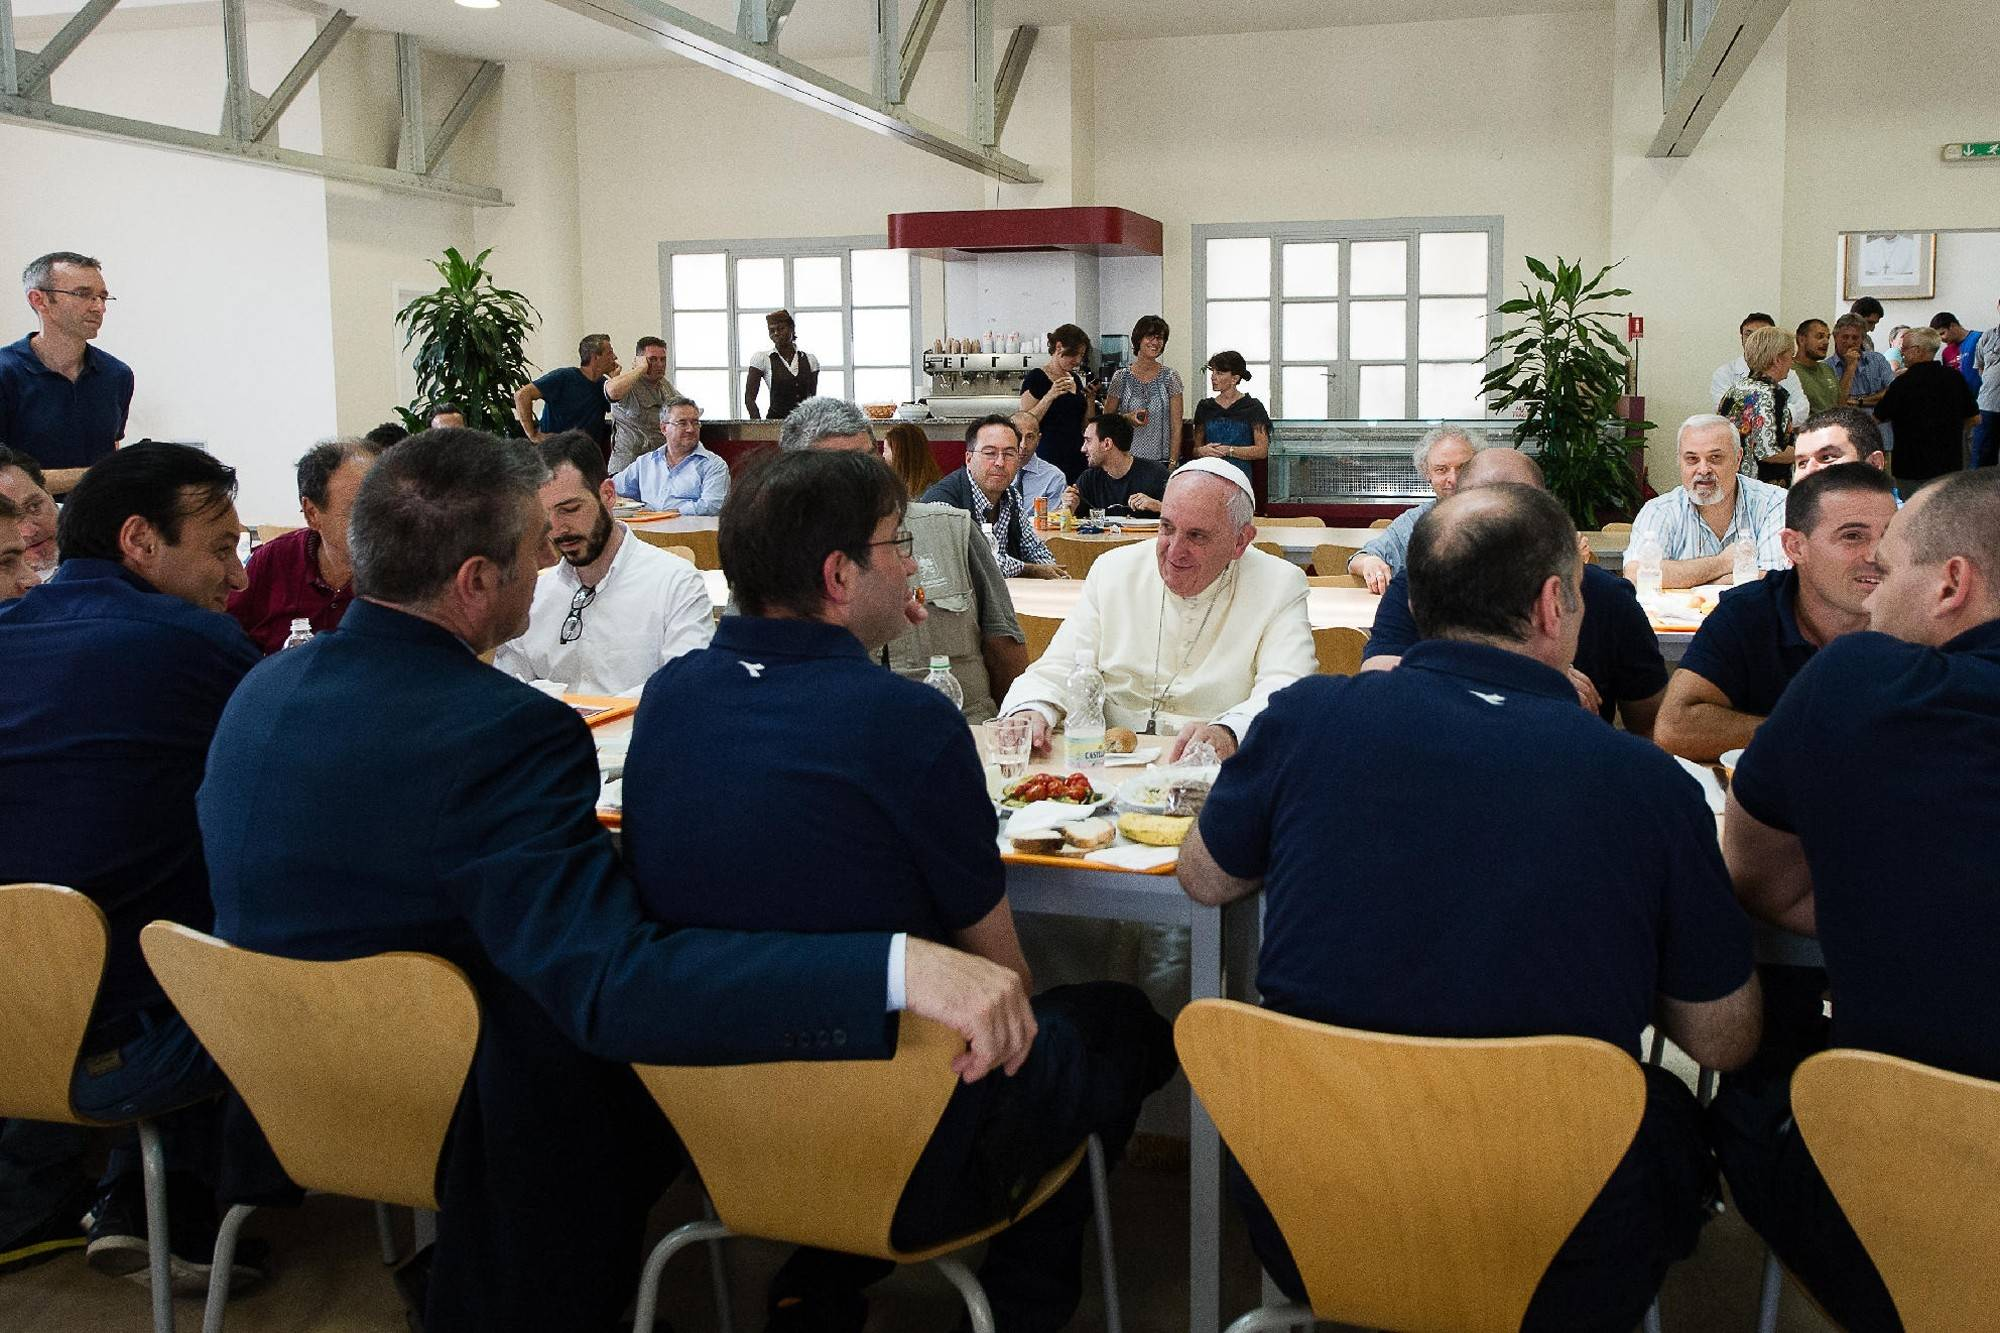 Lunch special: Pope lines up for self-serve meal